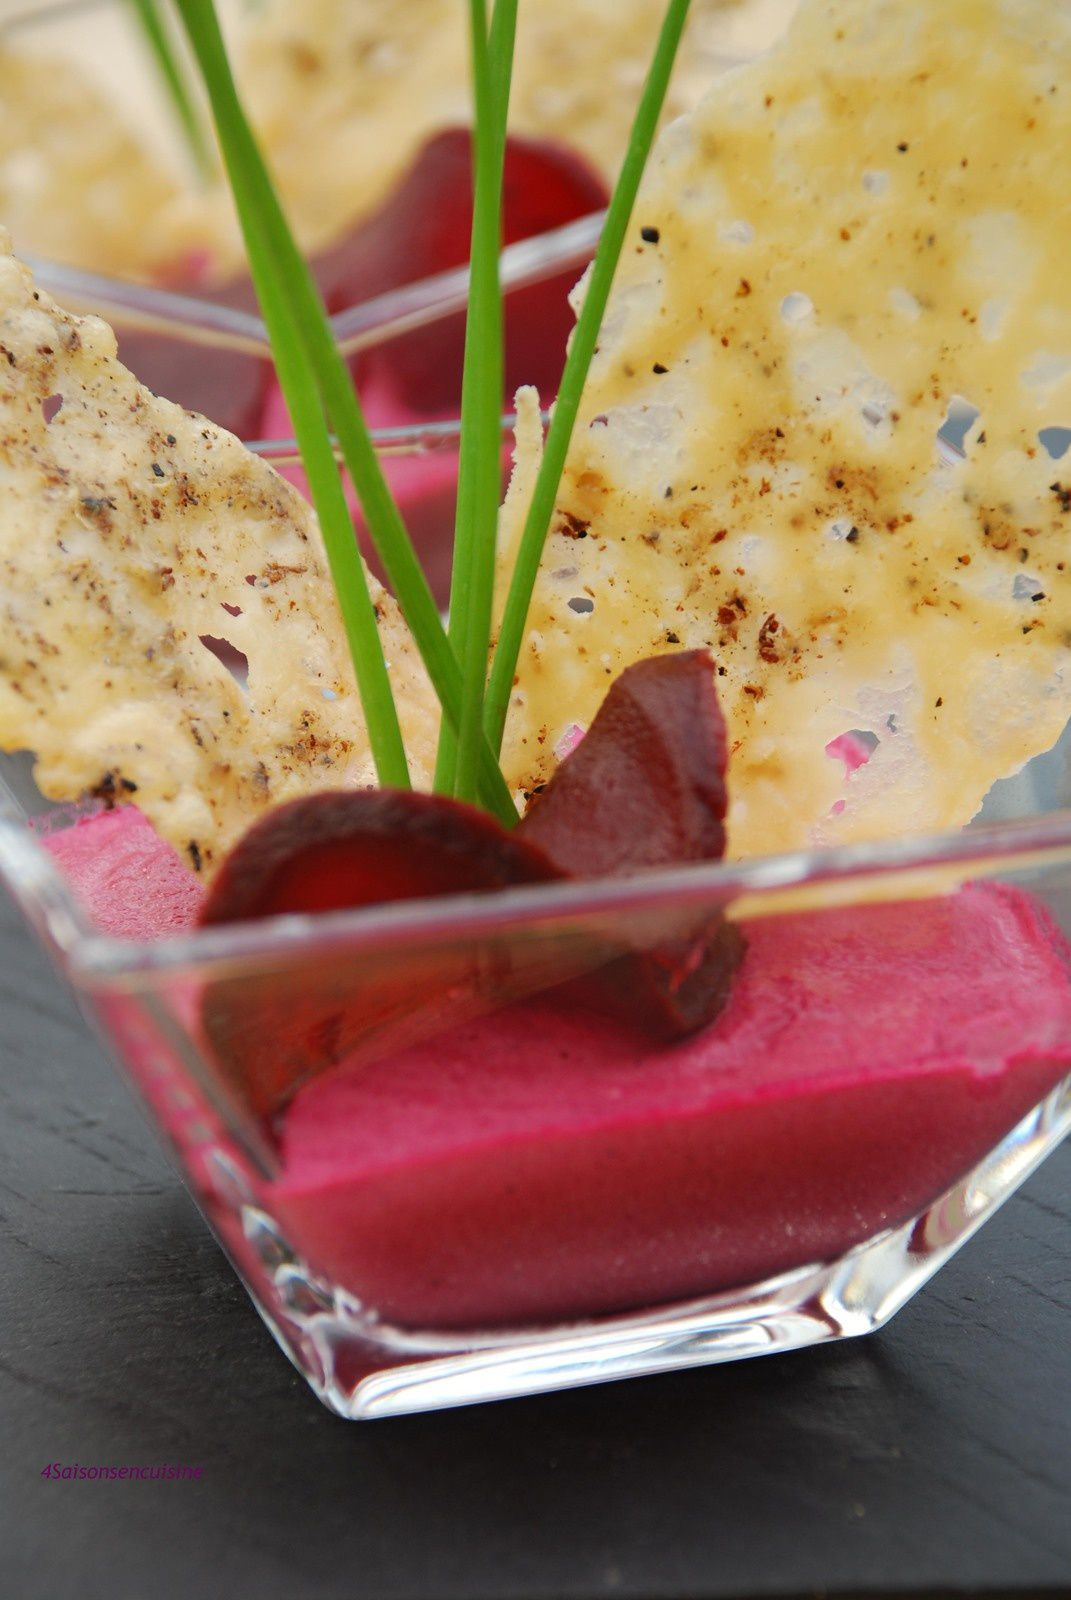 Panna cotta de betteraves rouges croustillants de parmesan